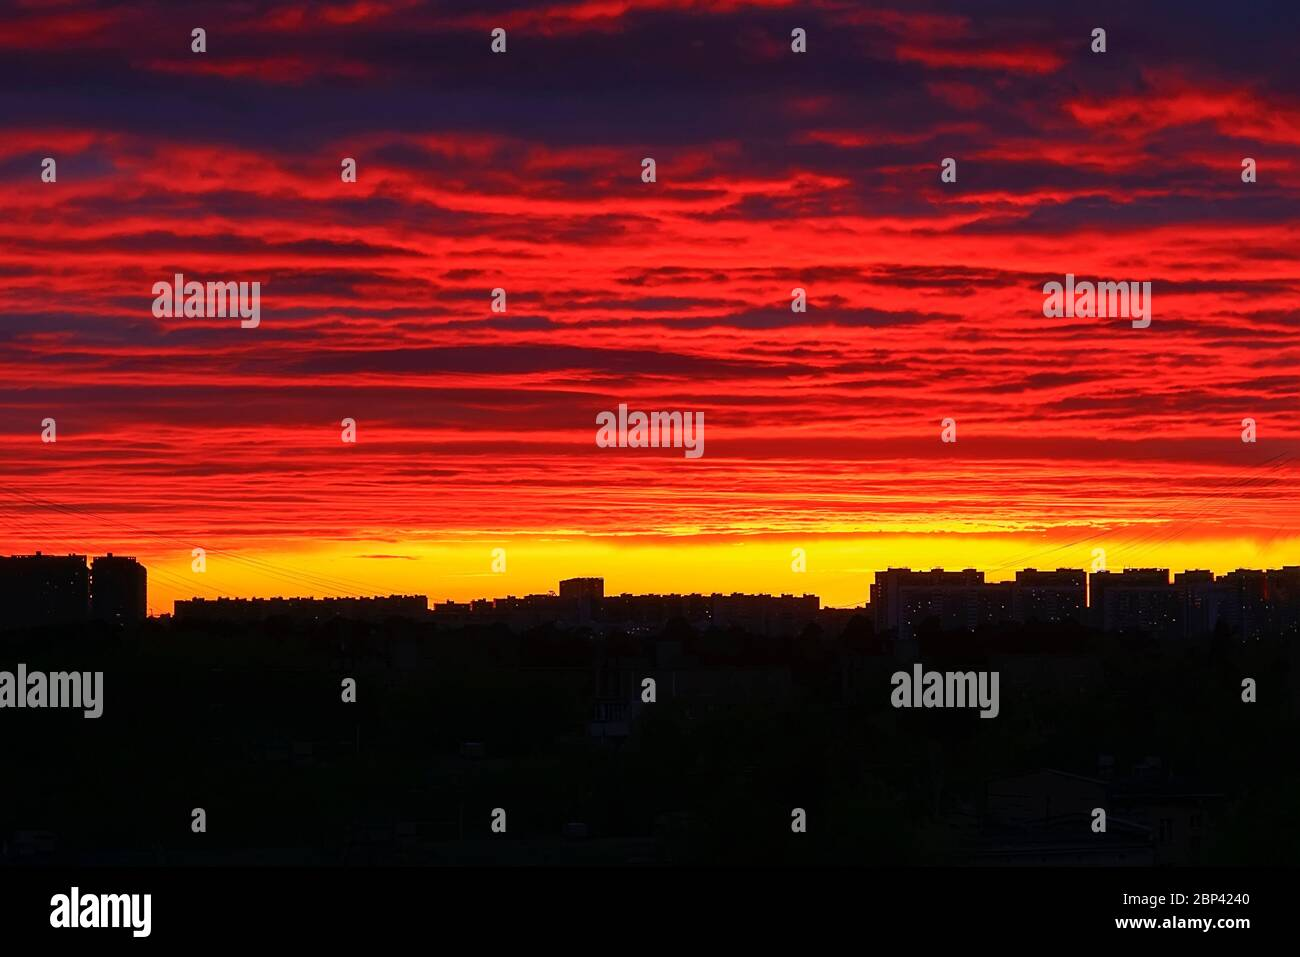 Bright fiery sunset over the dark silhouettes of houses, sky in the clouds, multi-colored paints . Stock Photo